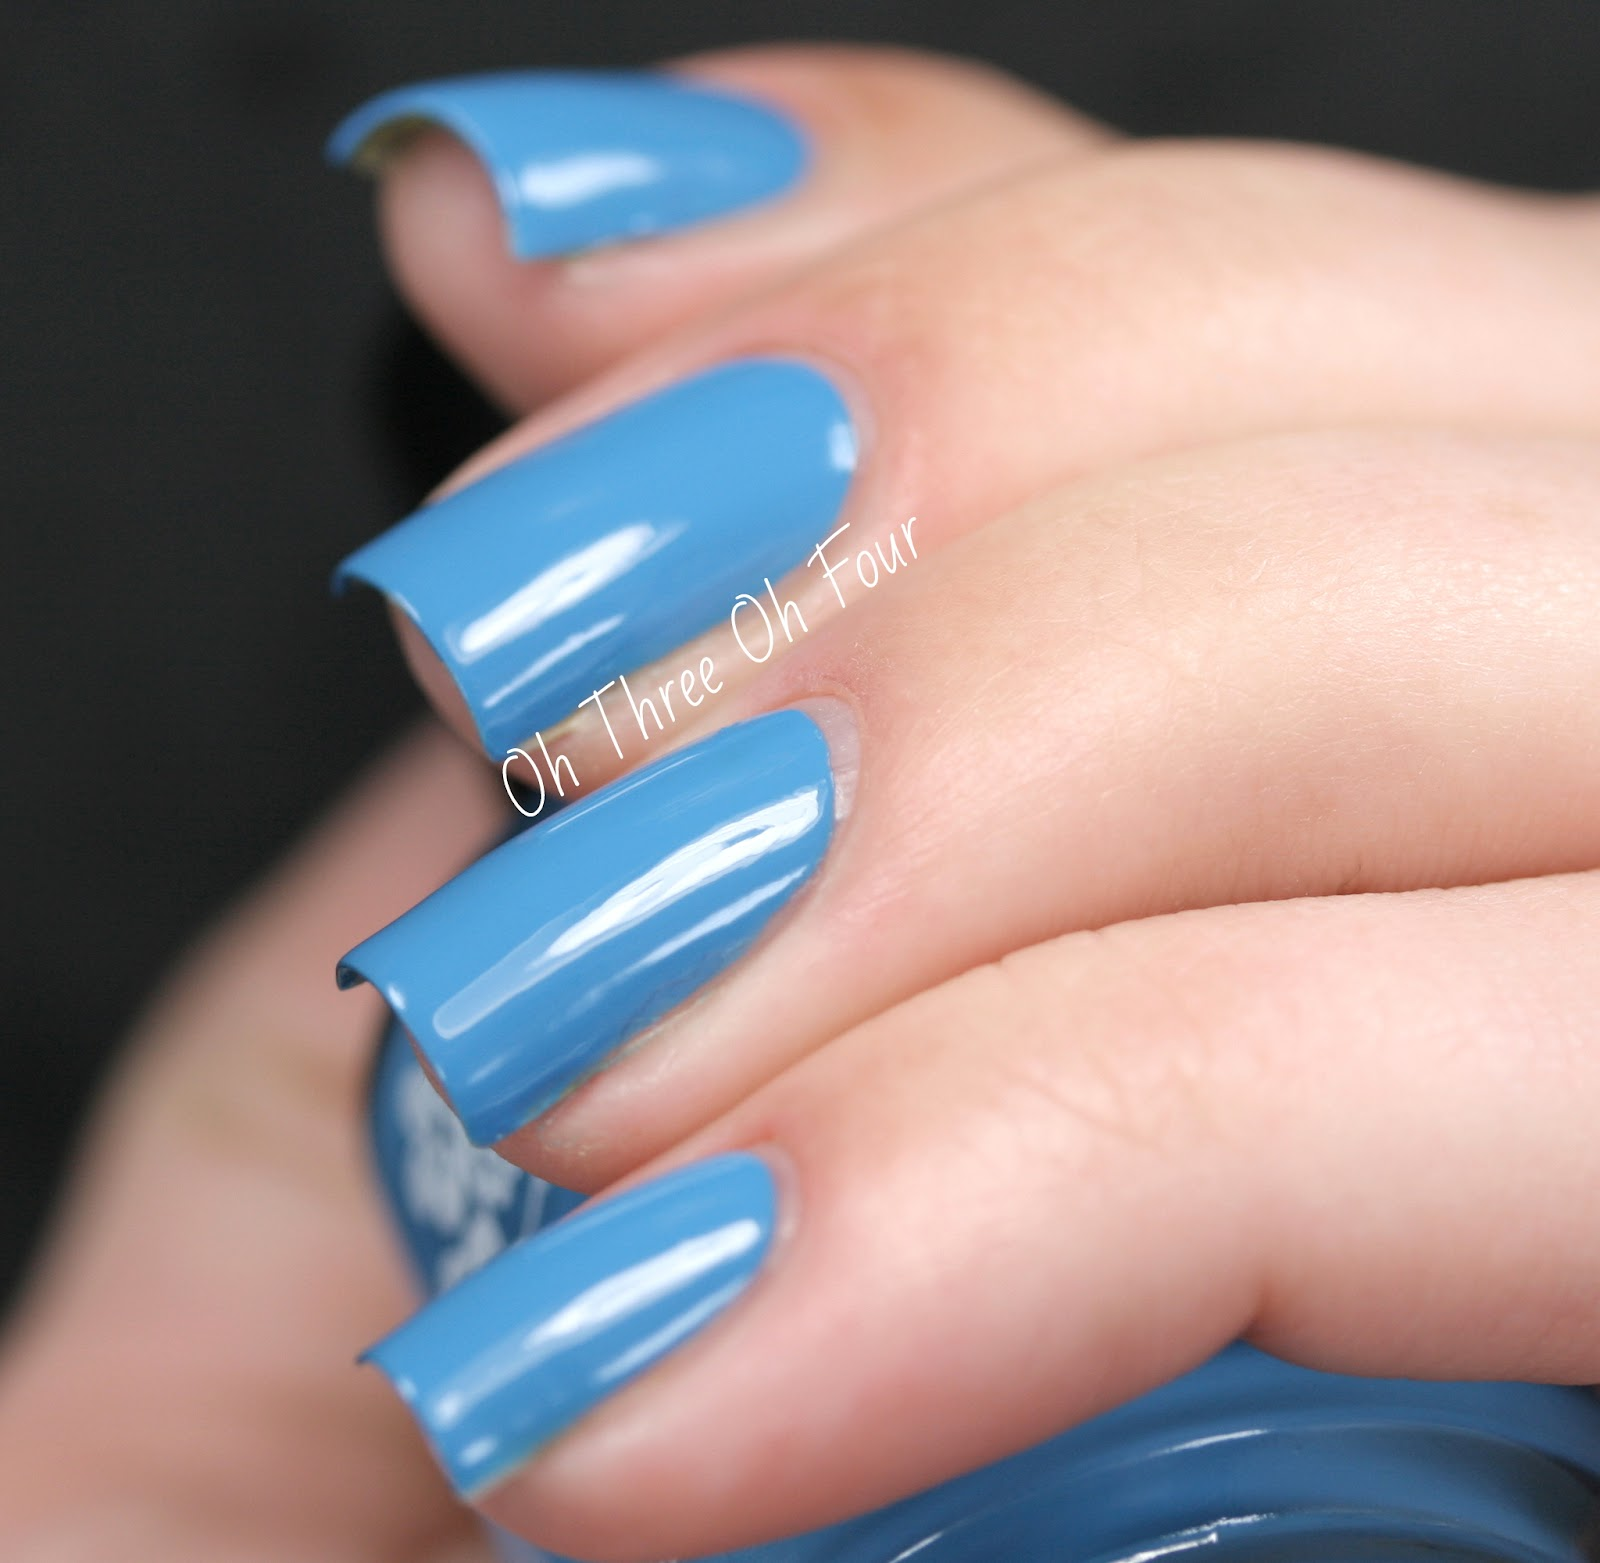 KBShimmer Sky Jinks swatch